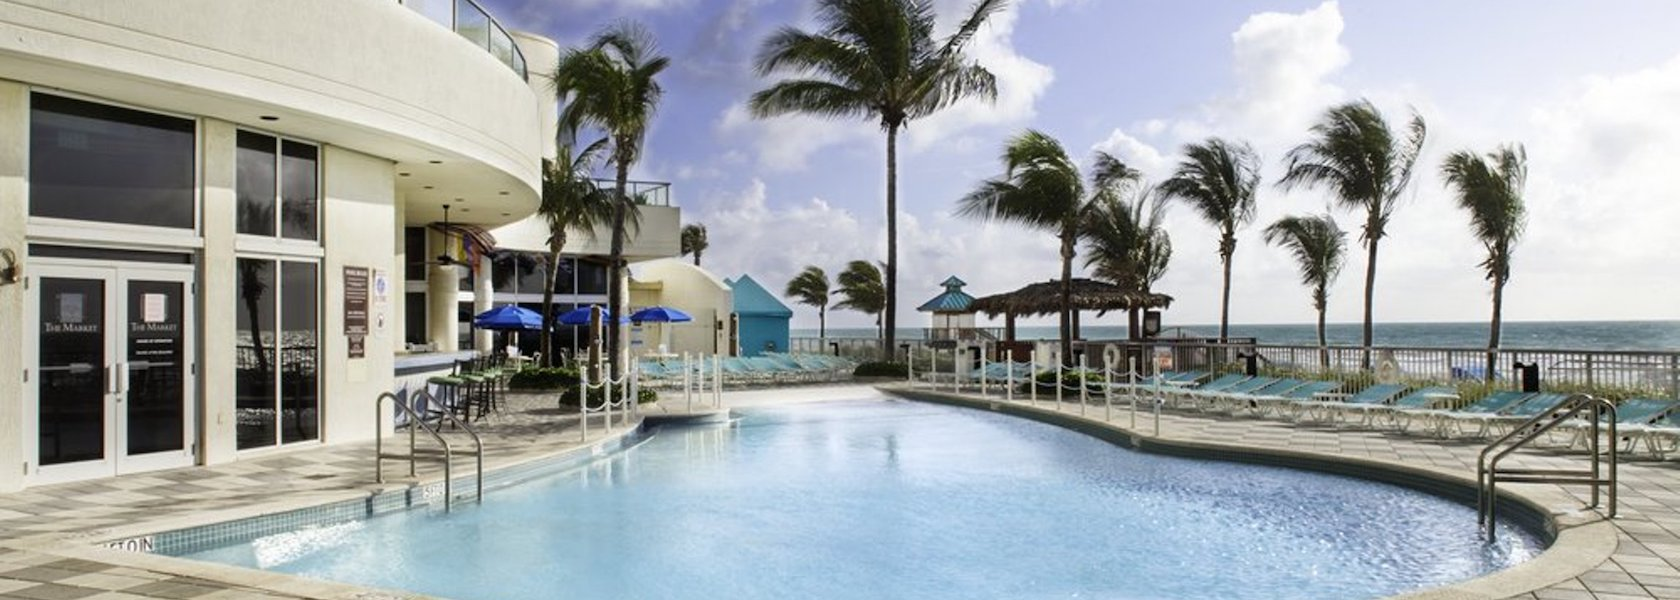 Pool right next to the Doubletree Ocean Point Resort overlooking the ocean.